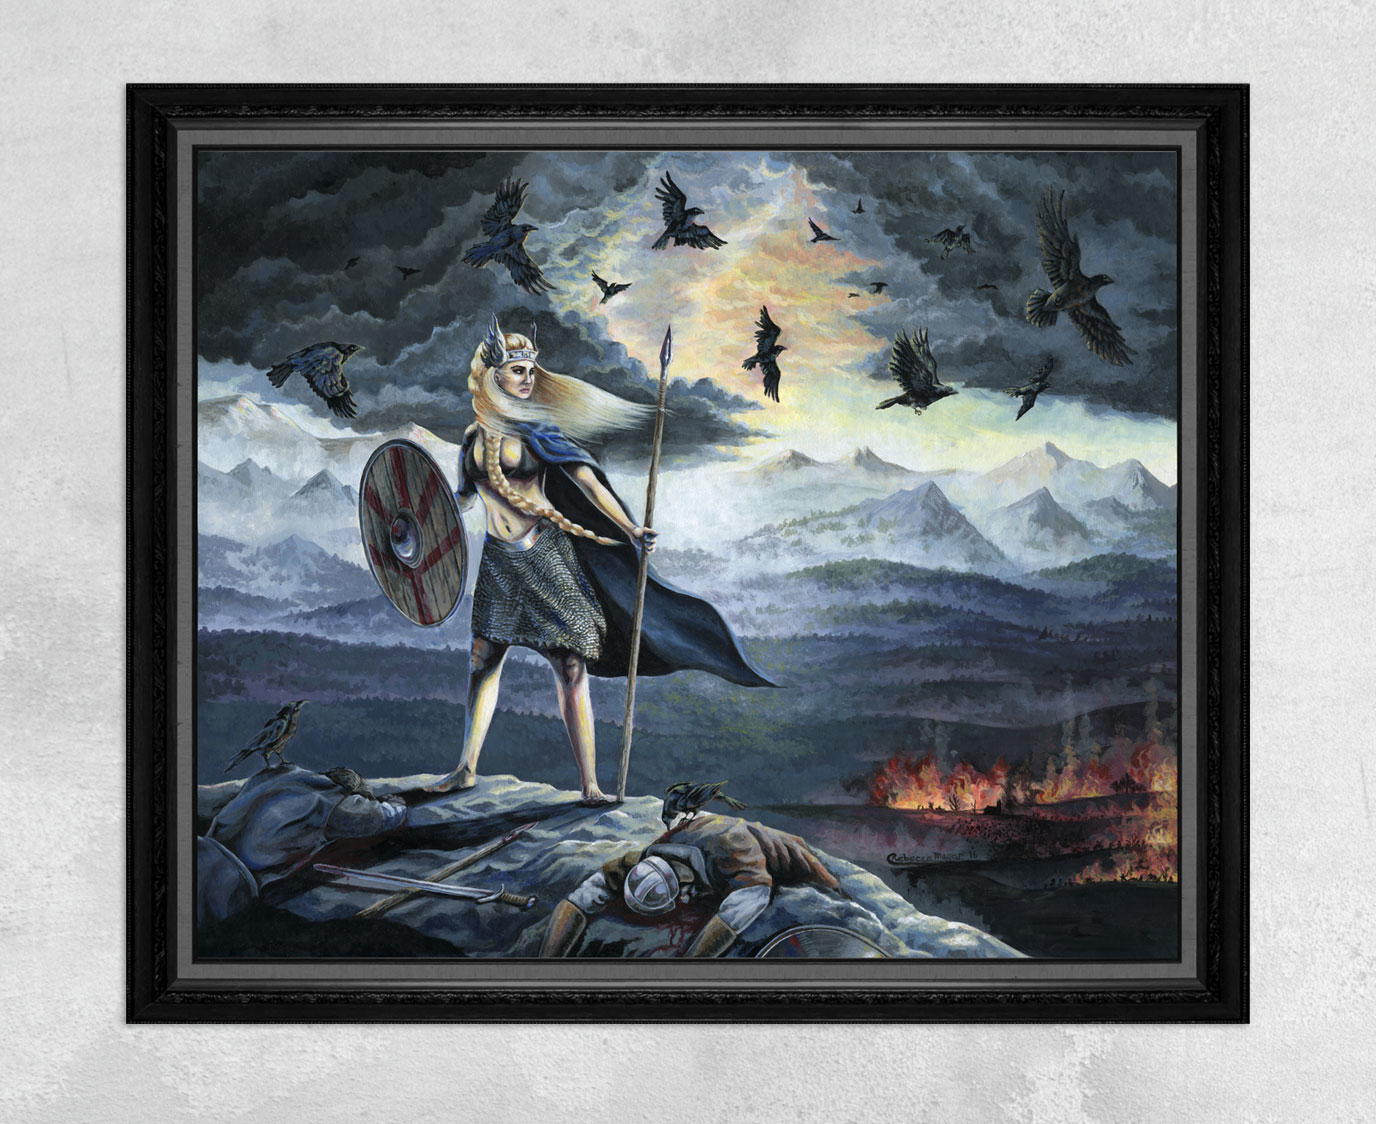 Viking Print of a Valkyrie, Crows and Battle Scene